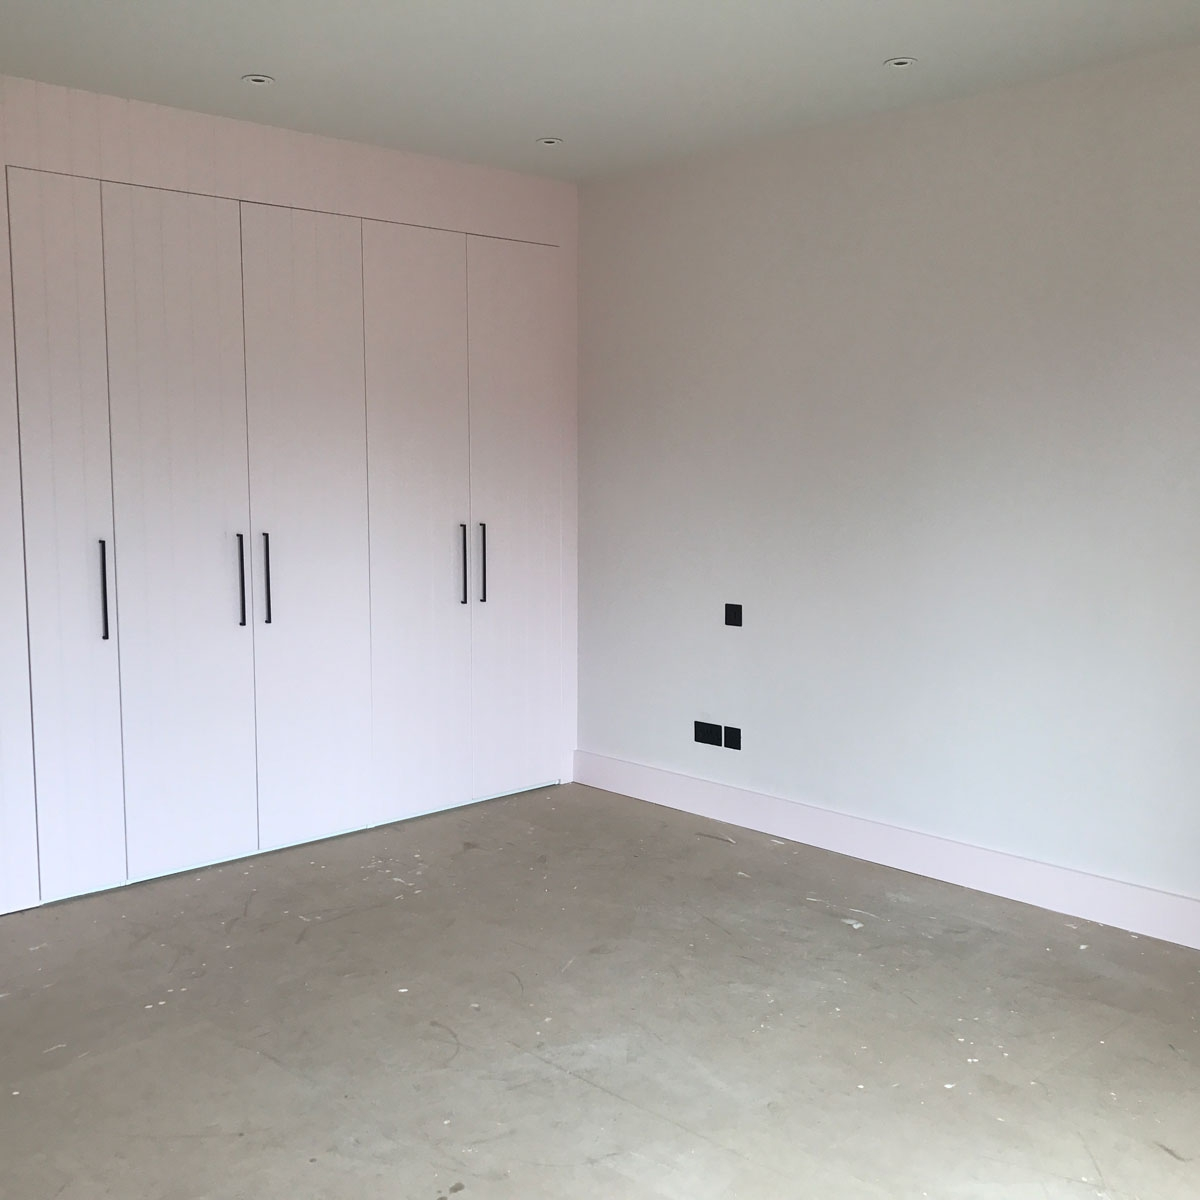 pink bedroom painted in Nevada 6 by Dulux with fitted tongue and groove wardrobes and black sockets and light switches